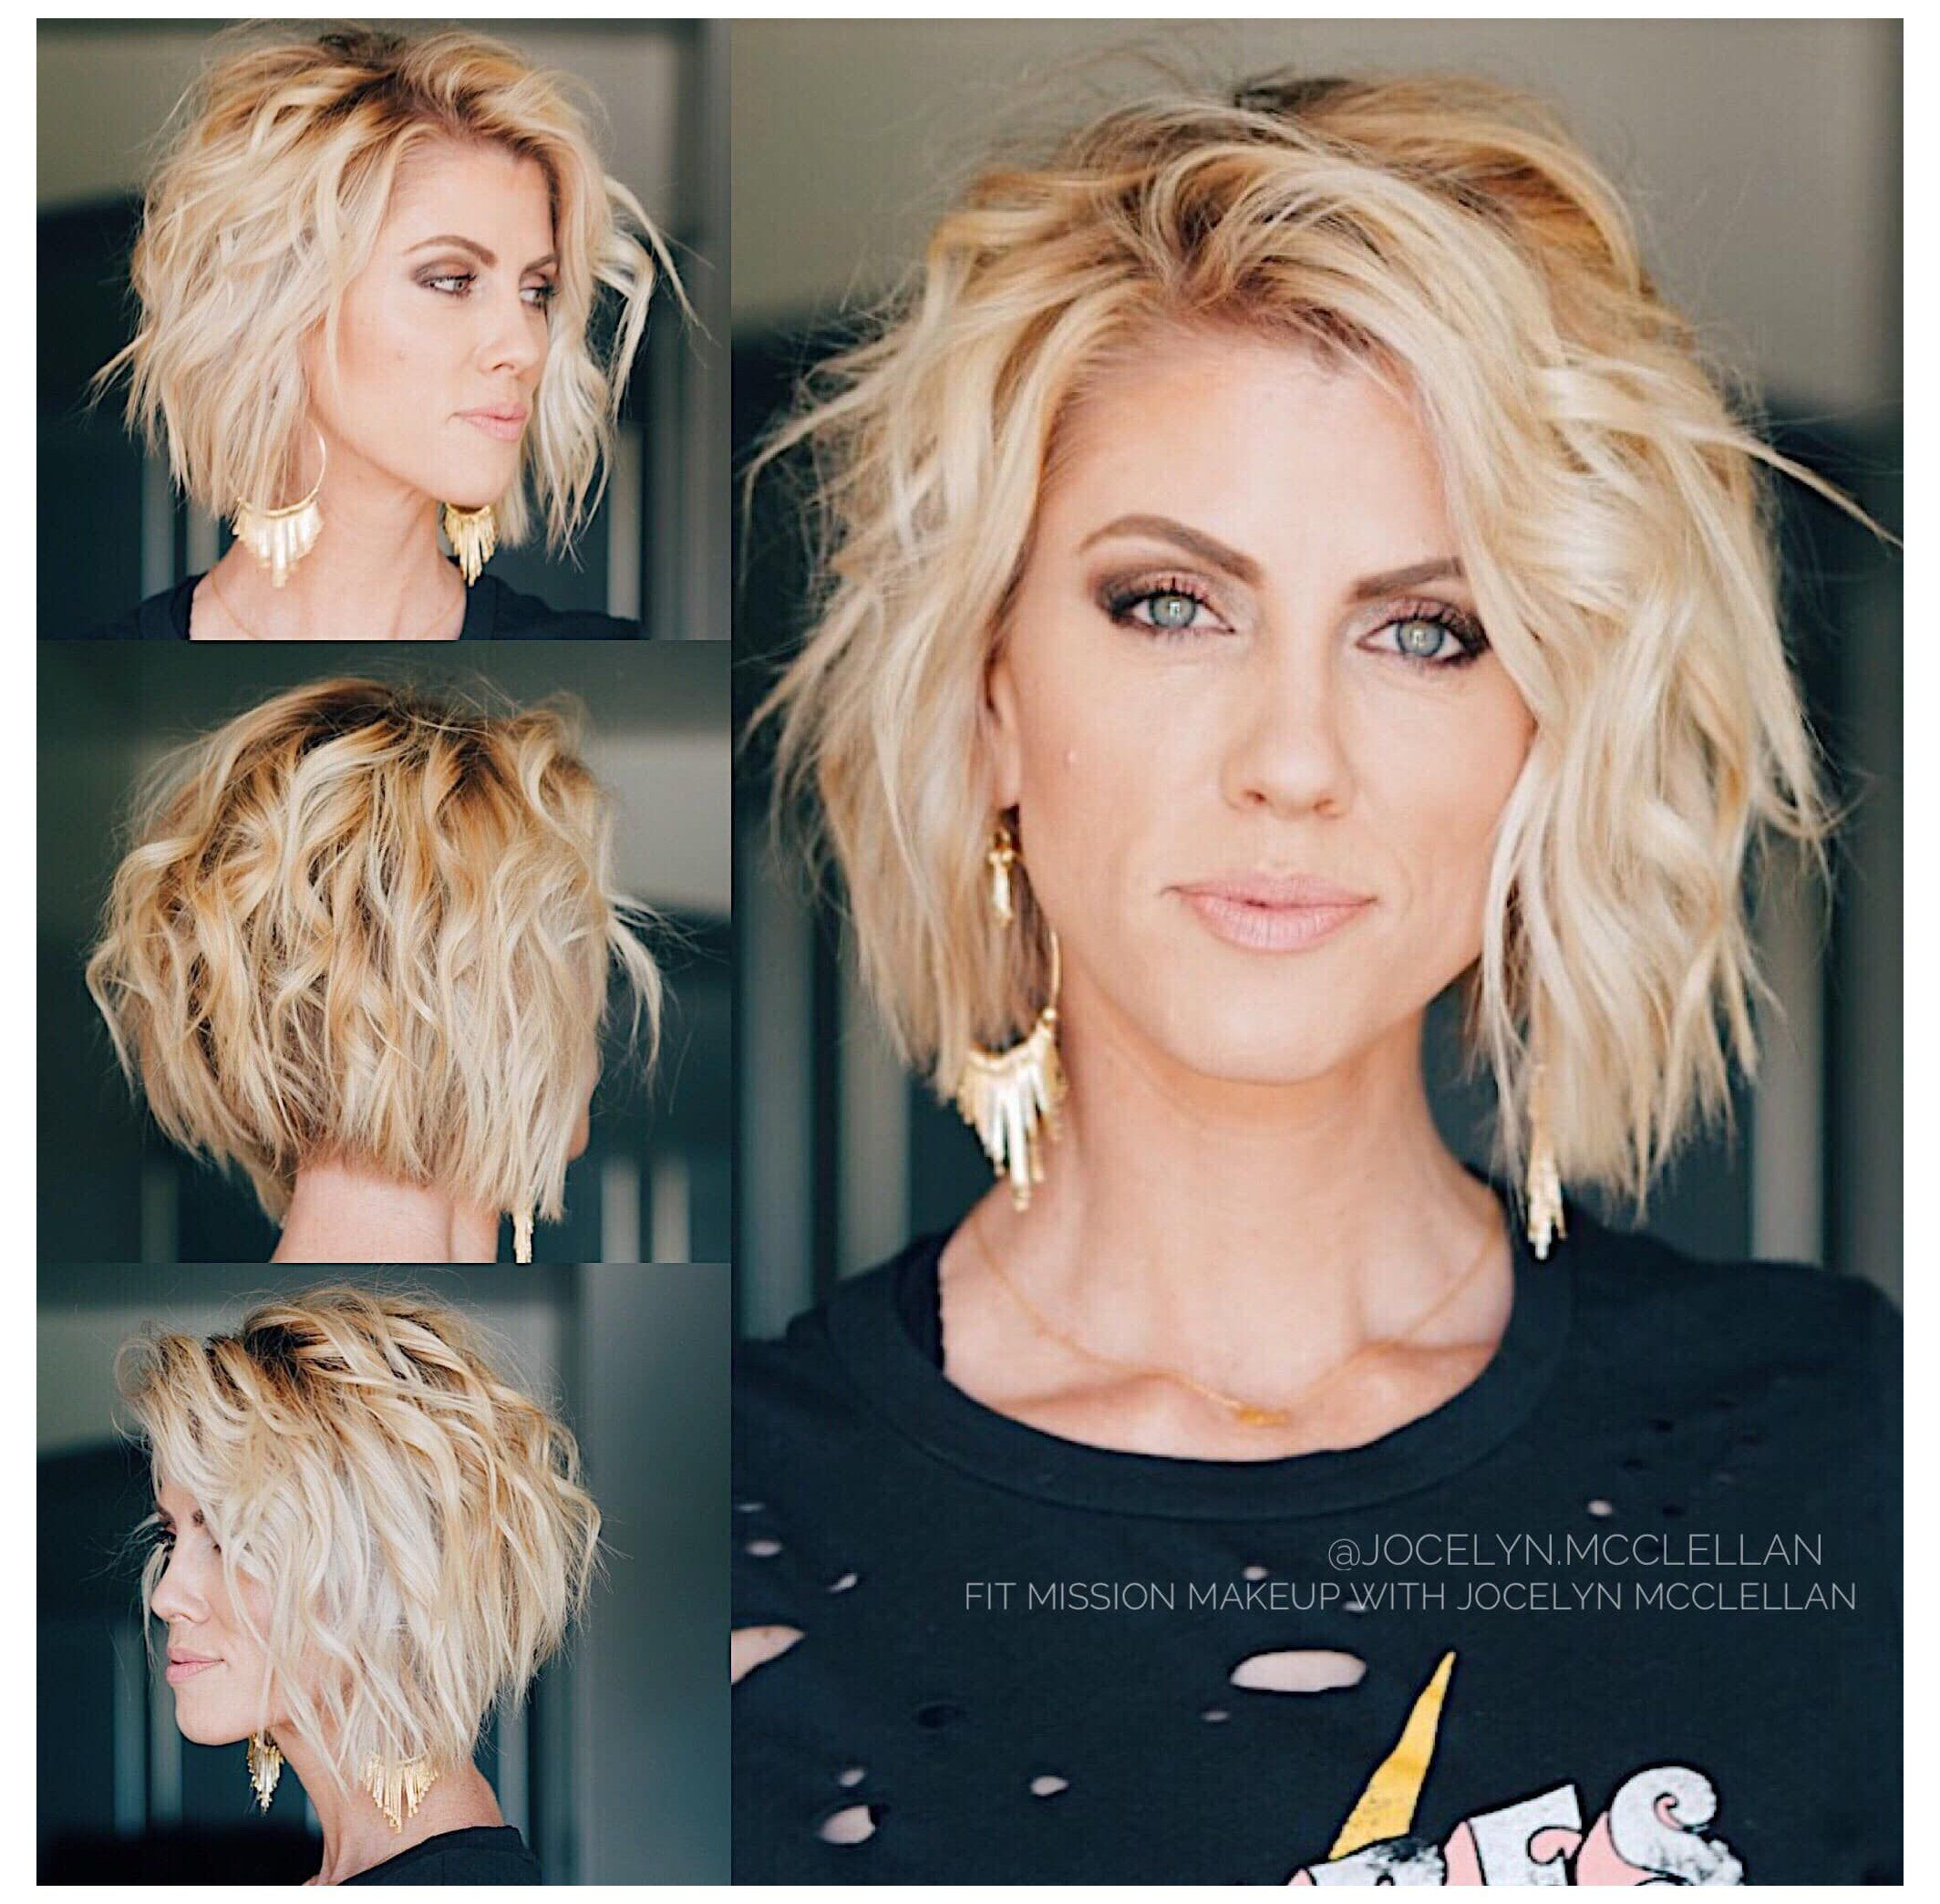 How To Create Effortless Waves For Short Hair A Tutorial Short Hair Waves How To Curl Short Hair Short Hair Tutorial